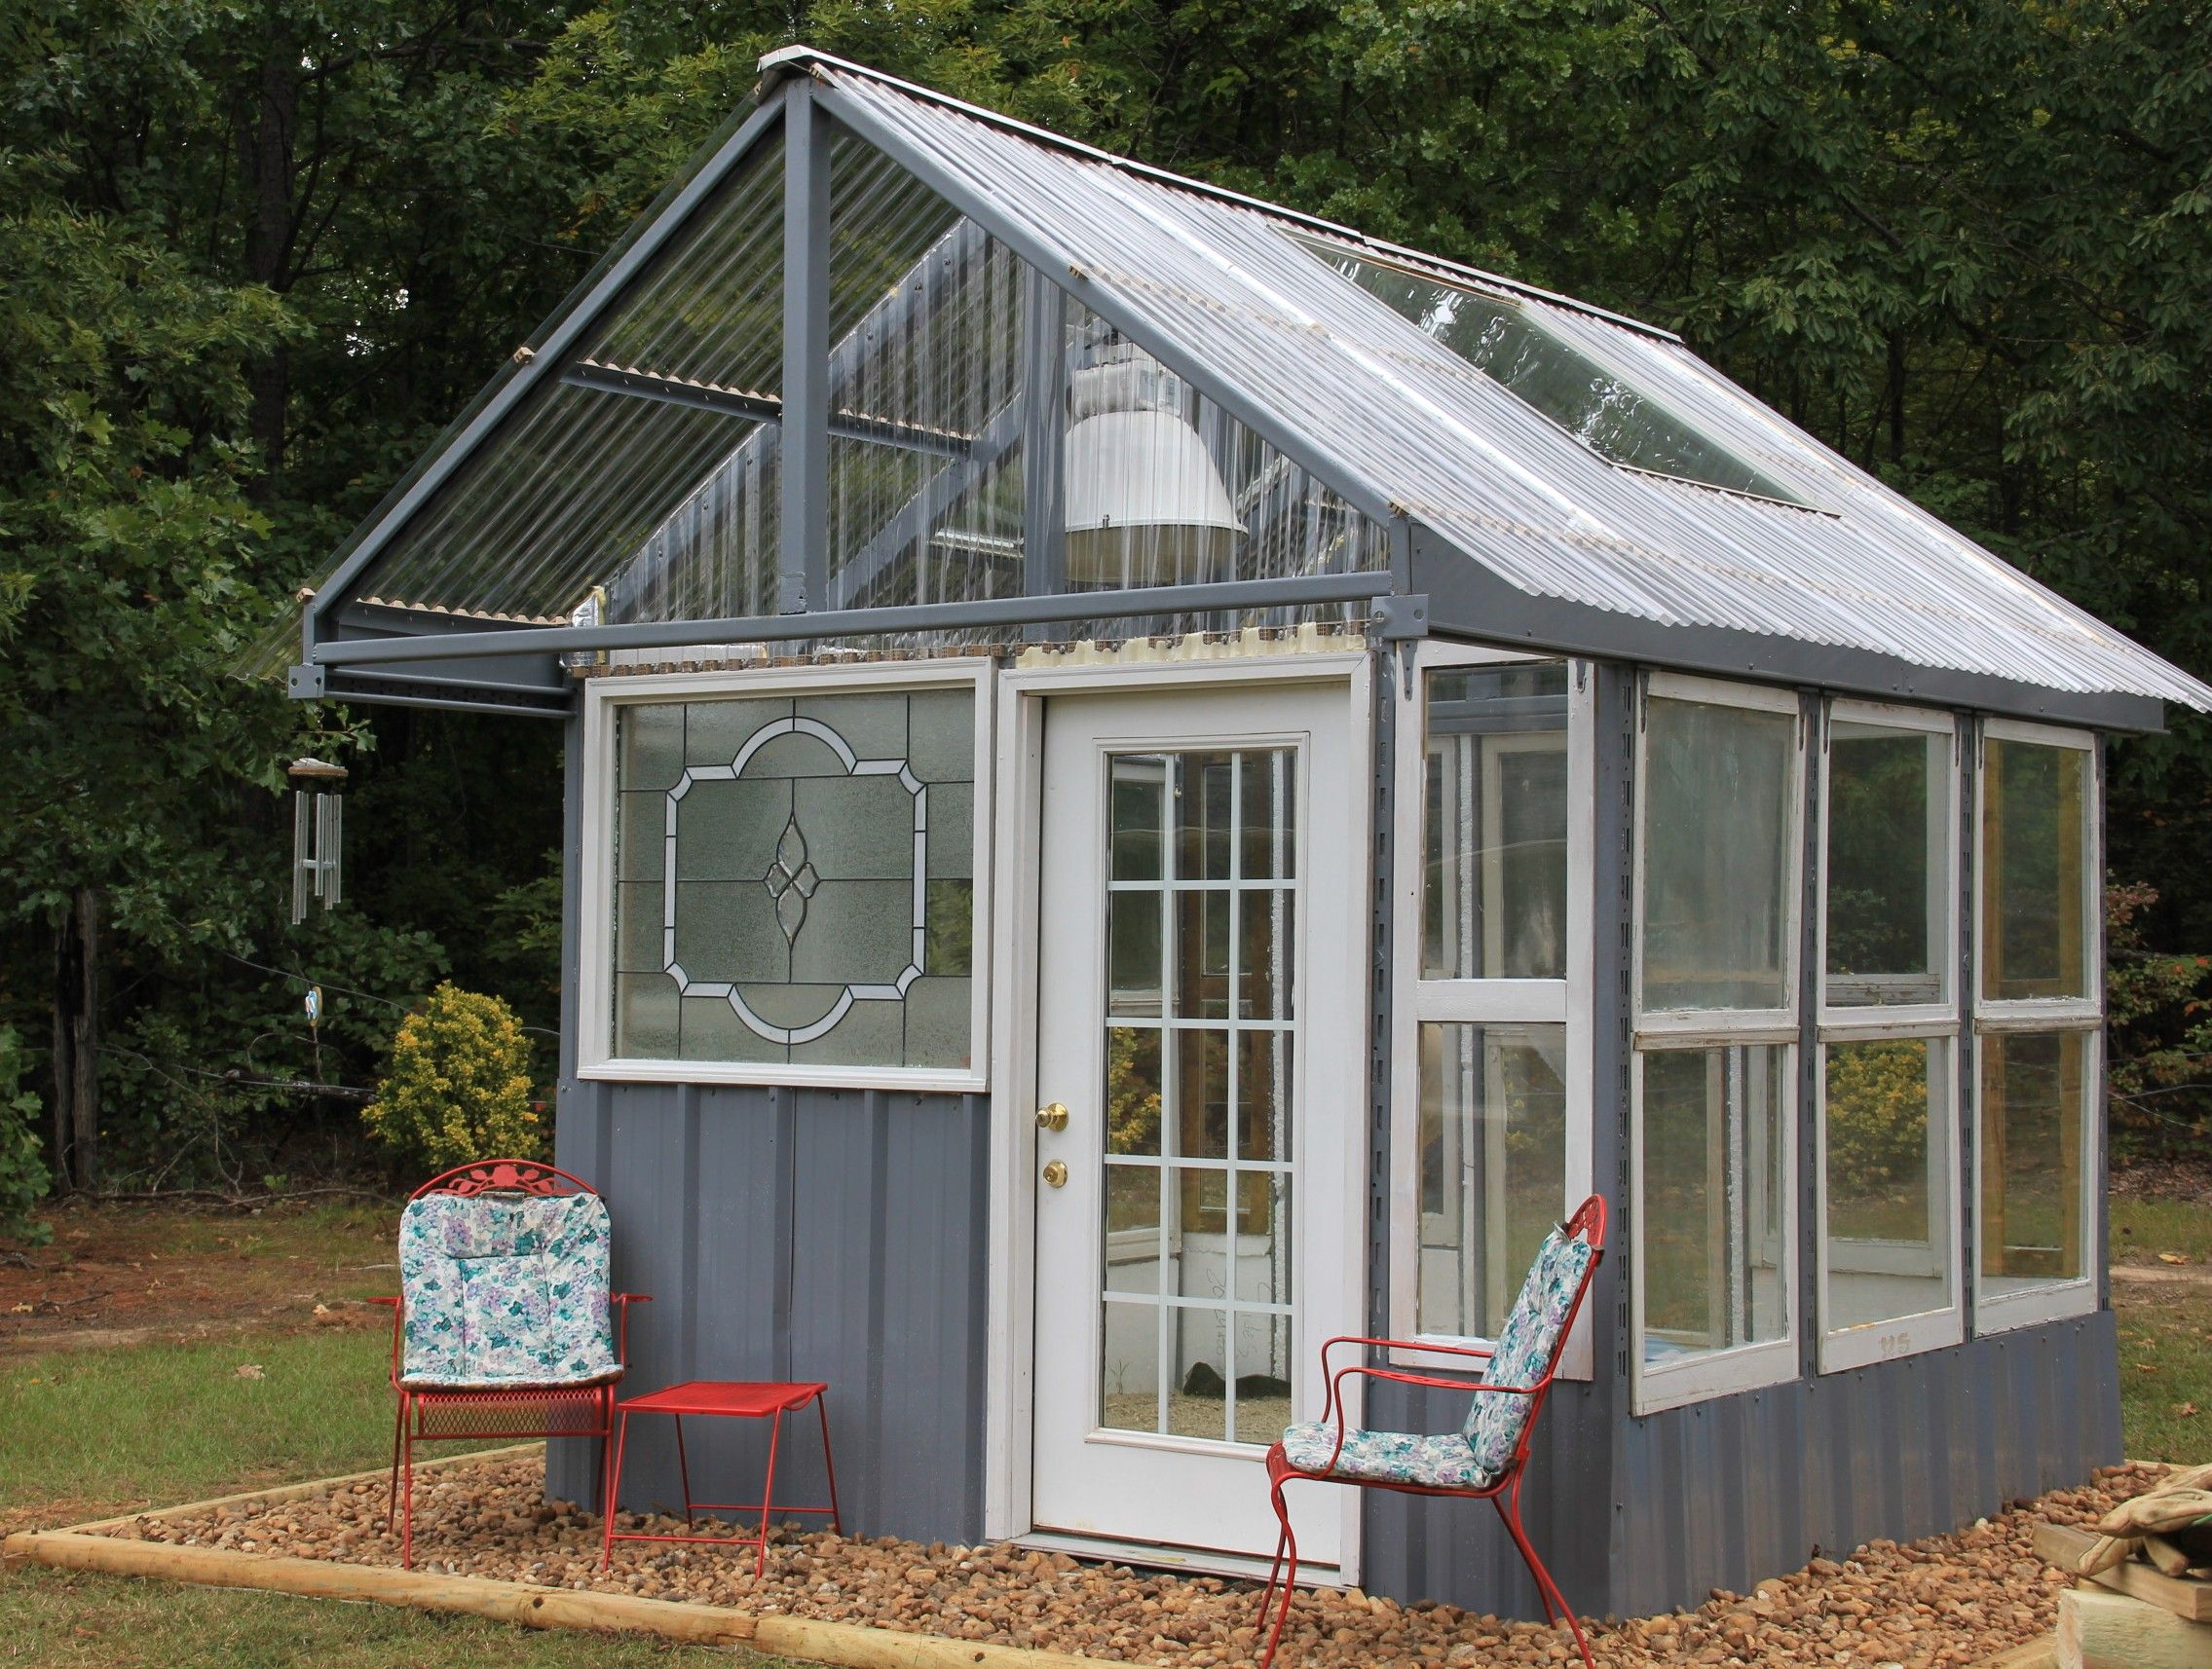 Greenhouse Made From Old Windows Complete With Water And